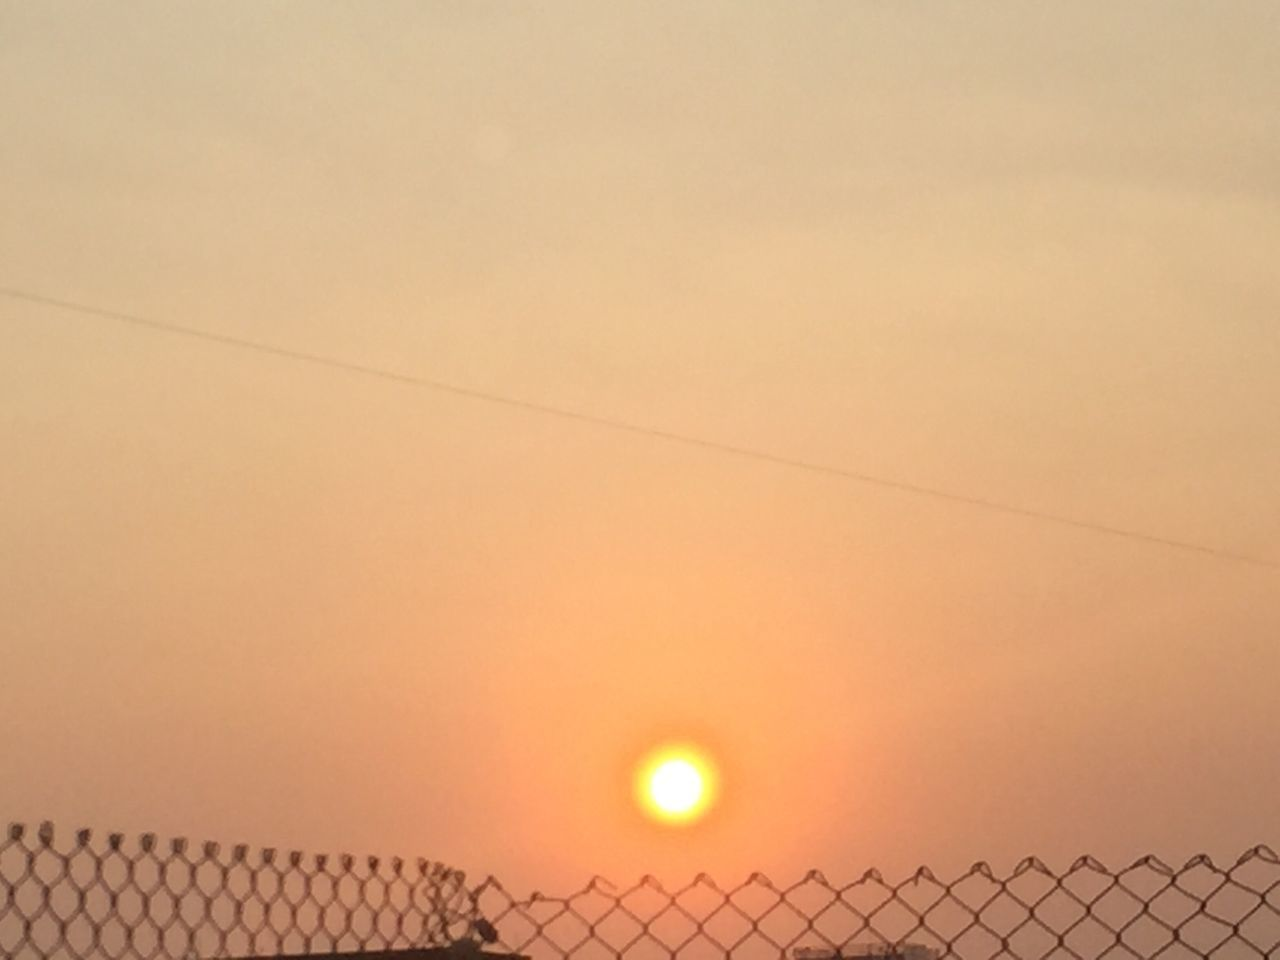 sunset, sun, orange color, nature, sky, beauty in nature, no people, outdoors, scenics, low angle view, architecture, building exterior, day